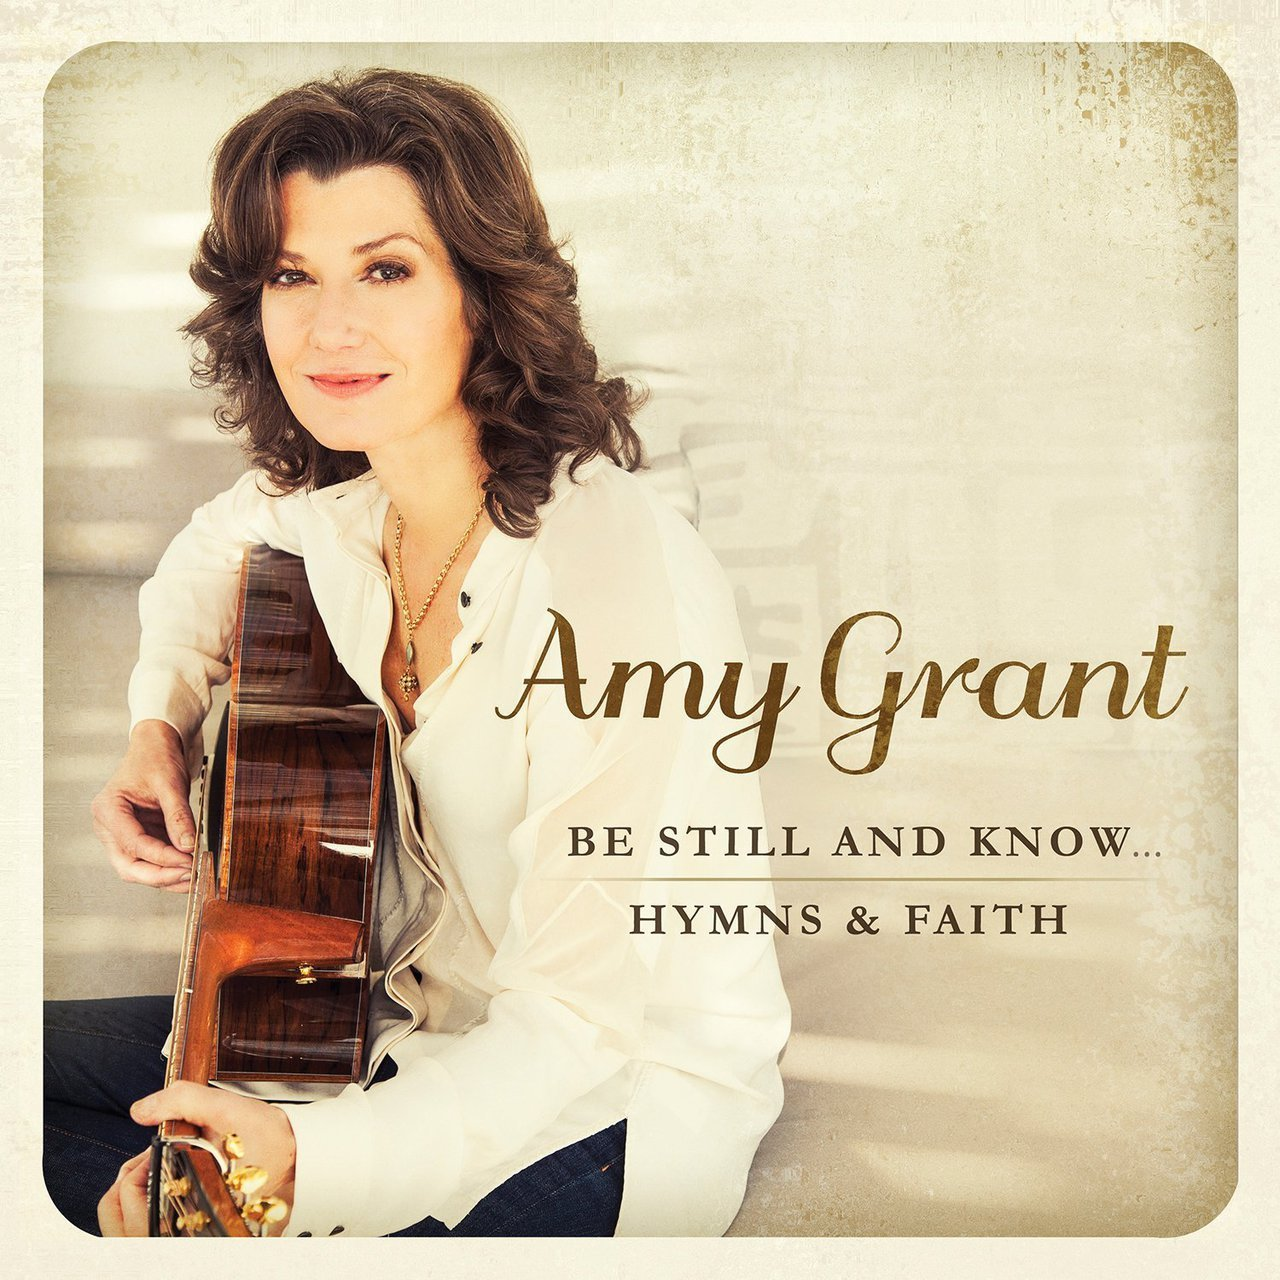 Be still and know   hymns   faith by amy grant